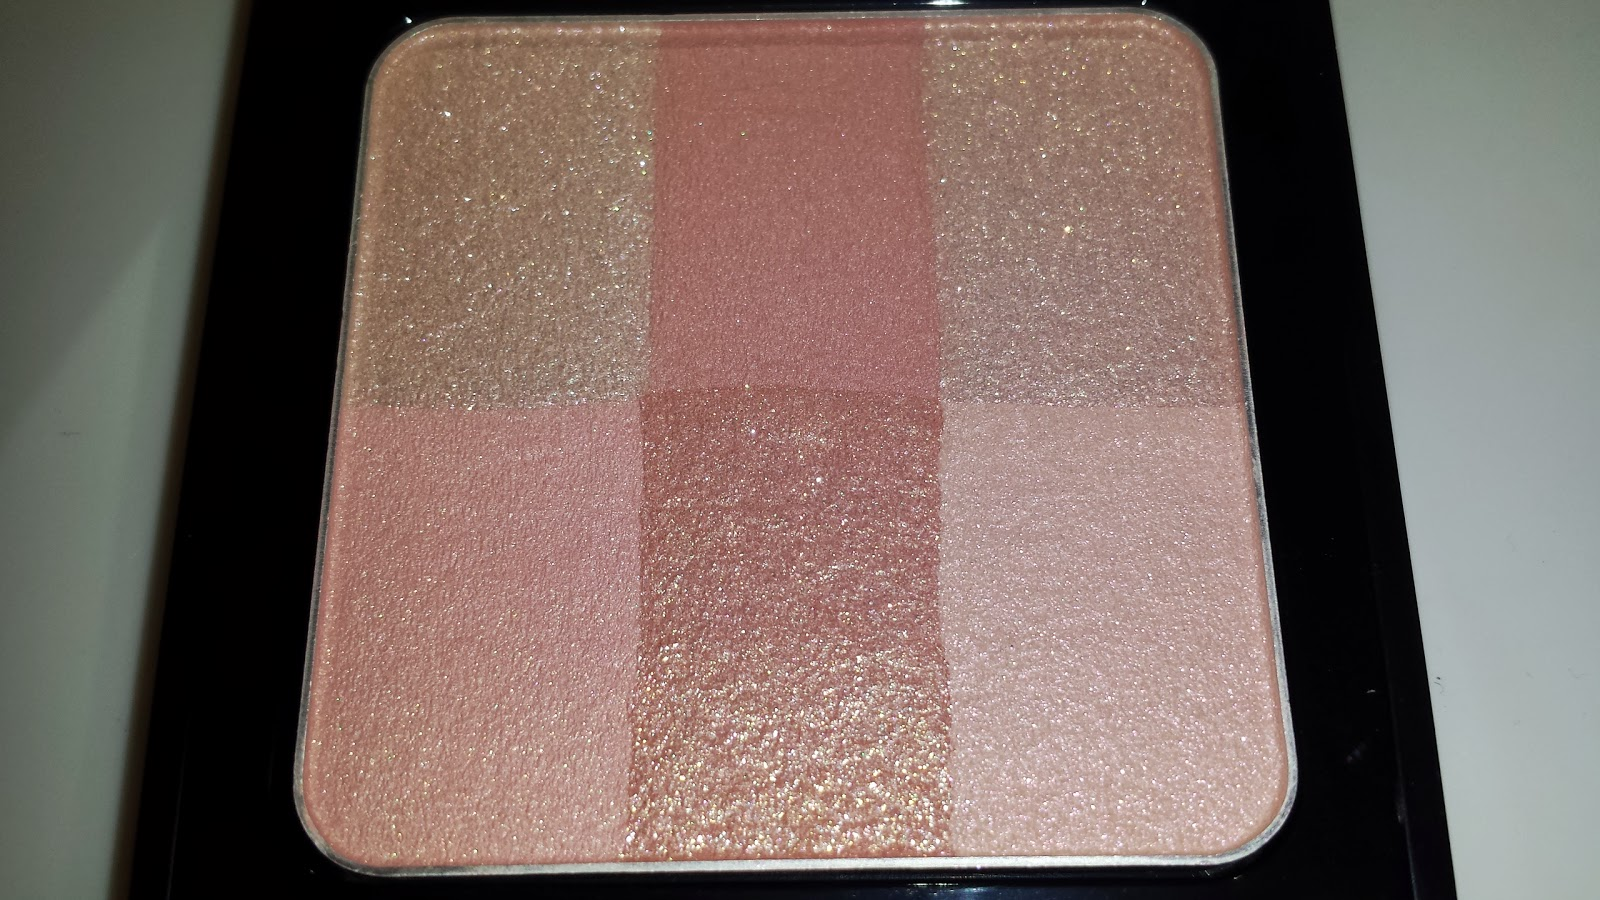 Shimmer Brick Compact by Bobbi Brown Cosmetics #12